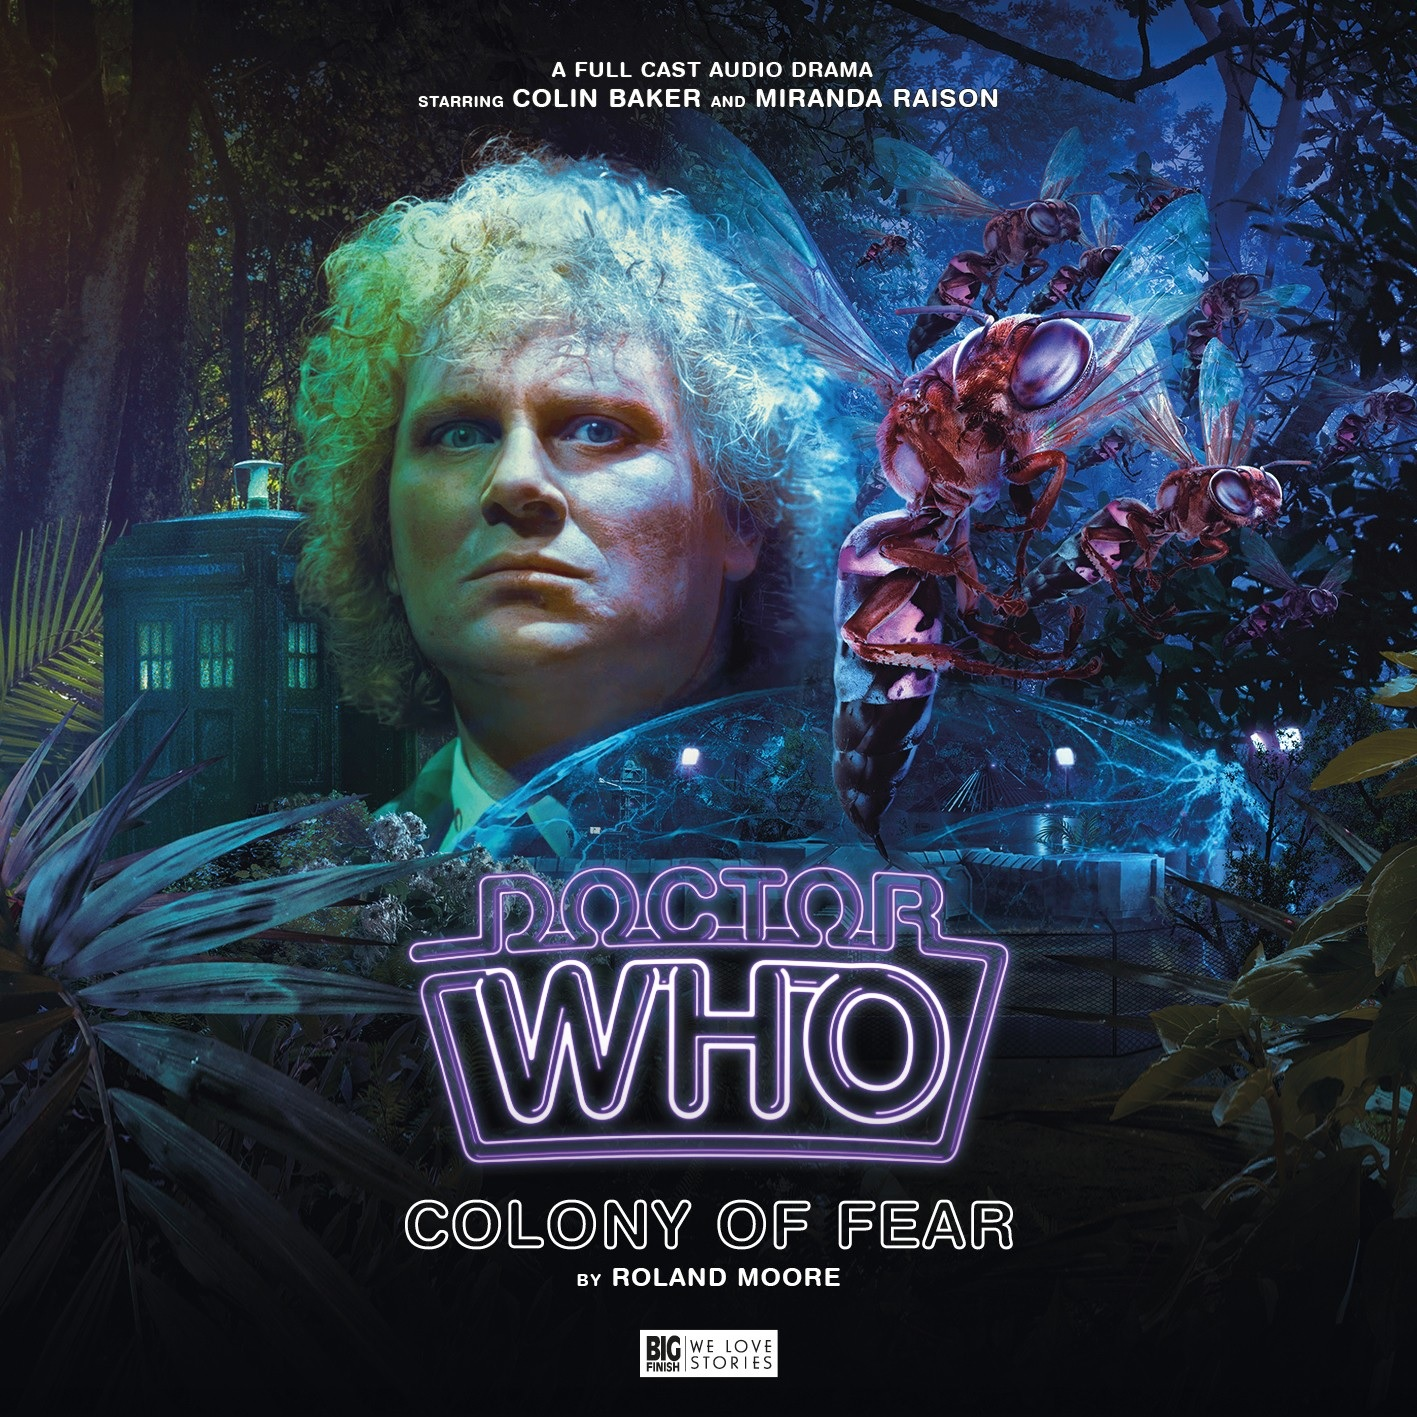 Reviewed: Big Finish's Colony of Fear